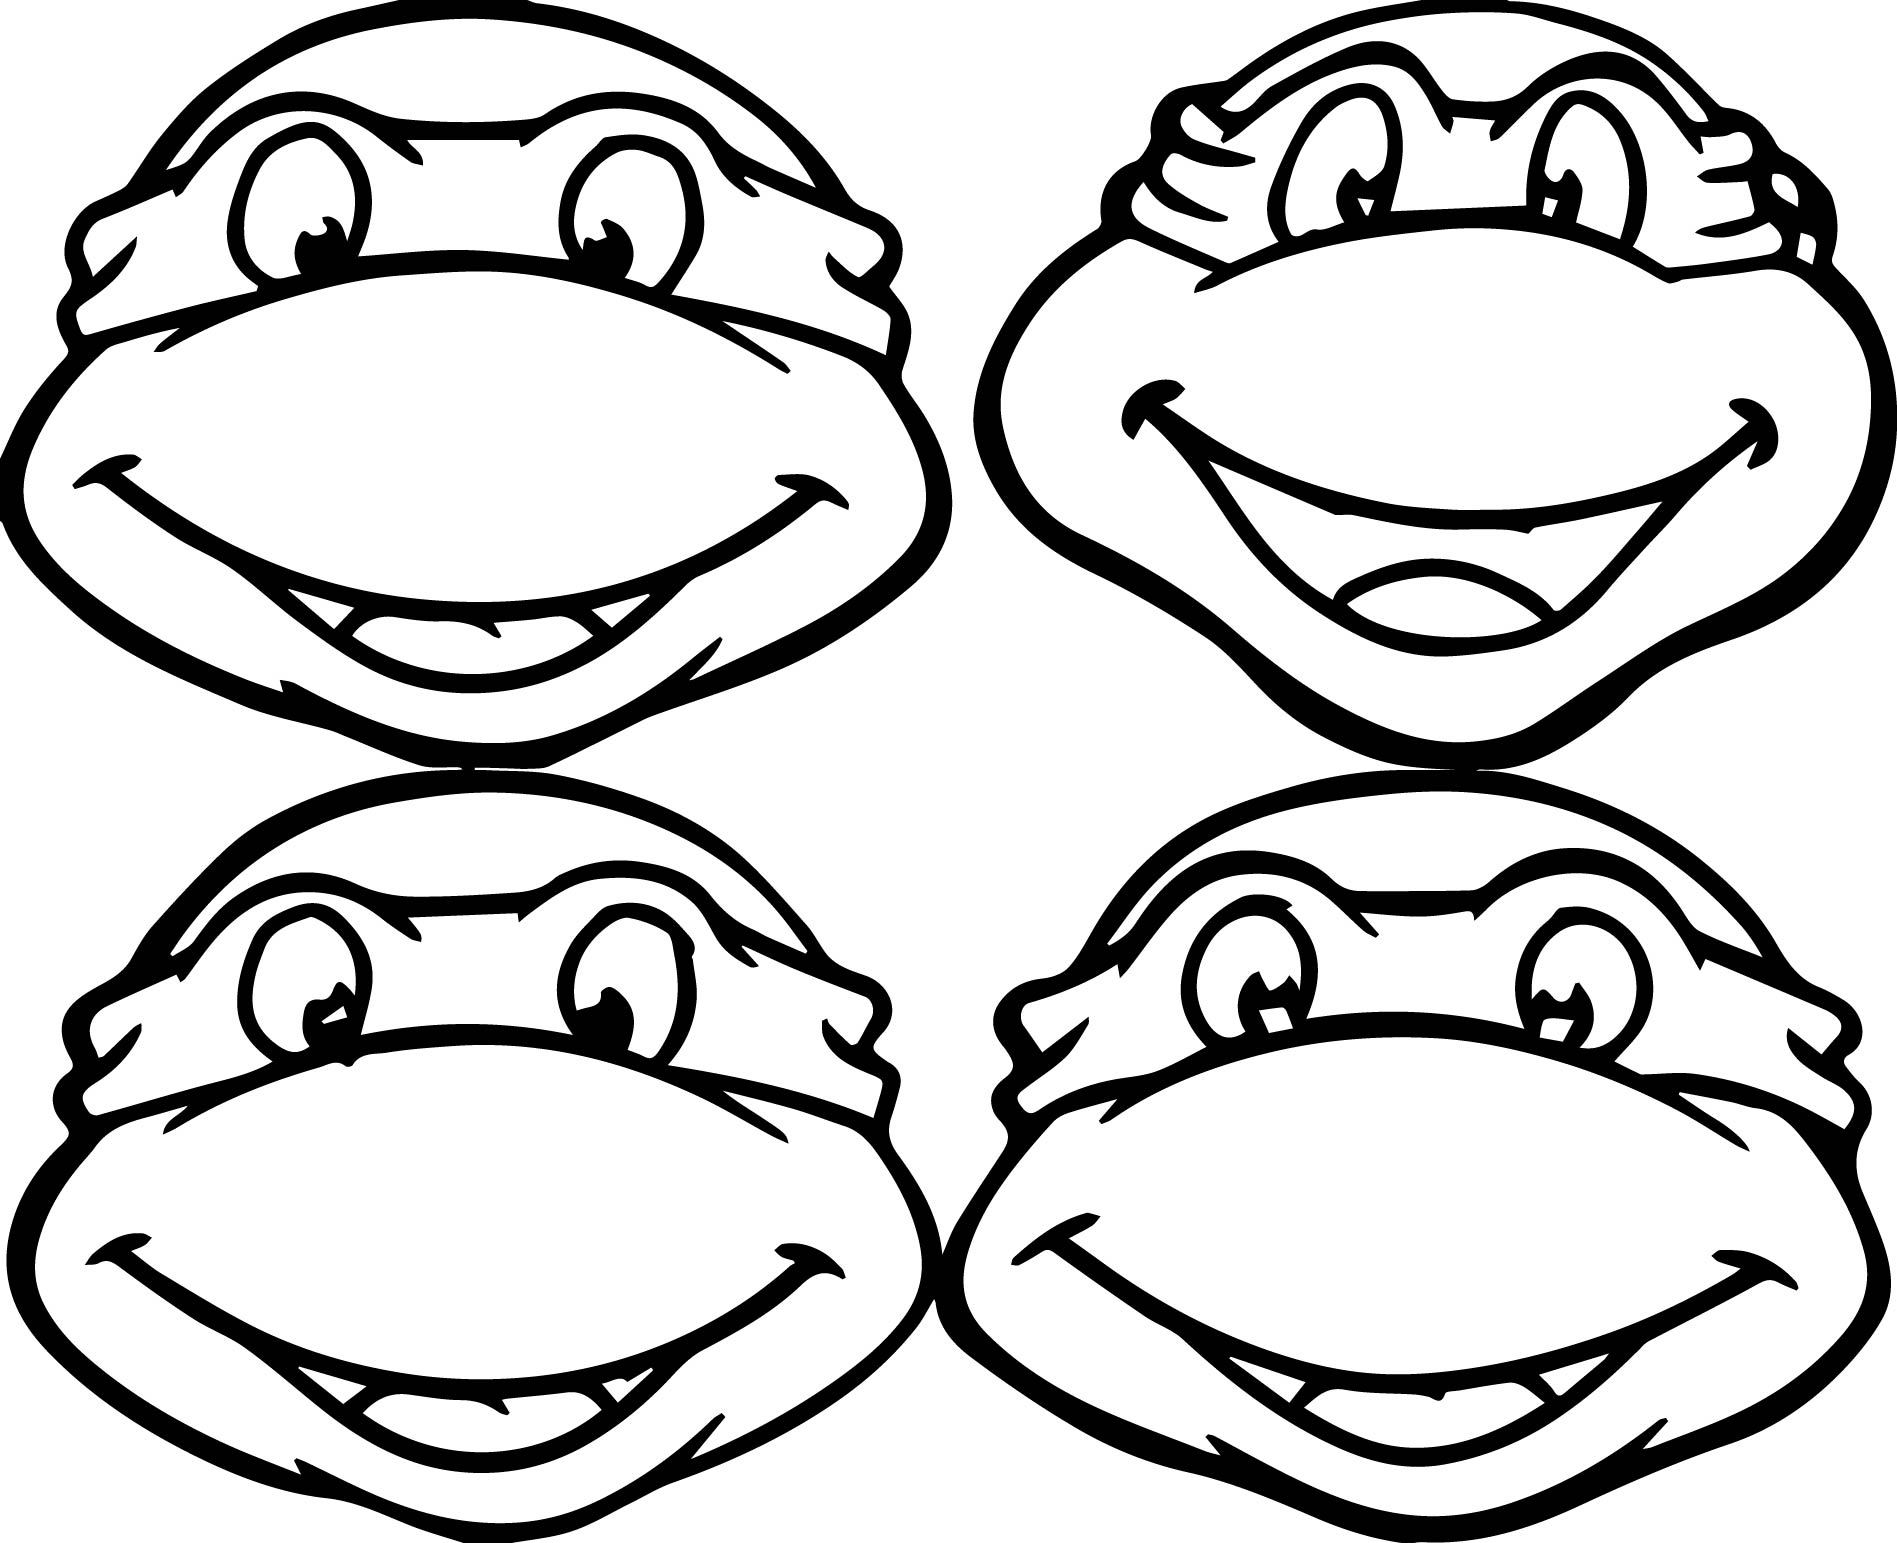 turtle coloring book page free turtle coloring pages page book coloring turtle